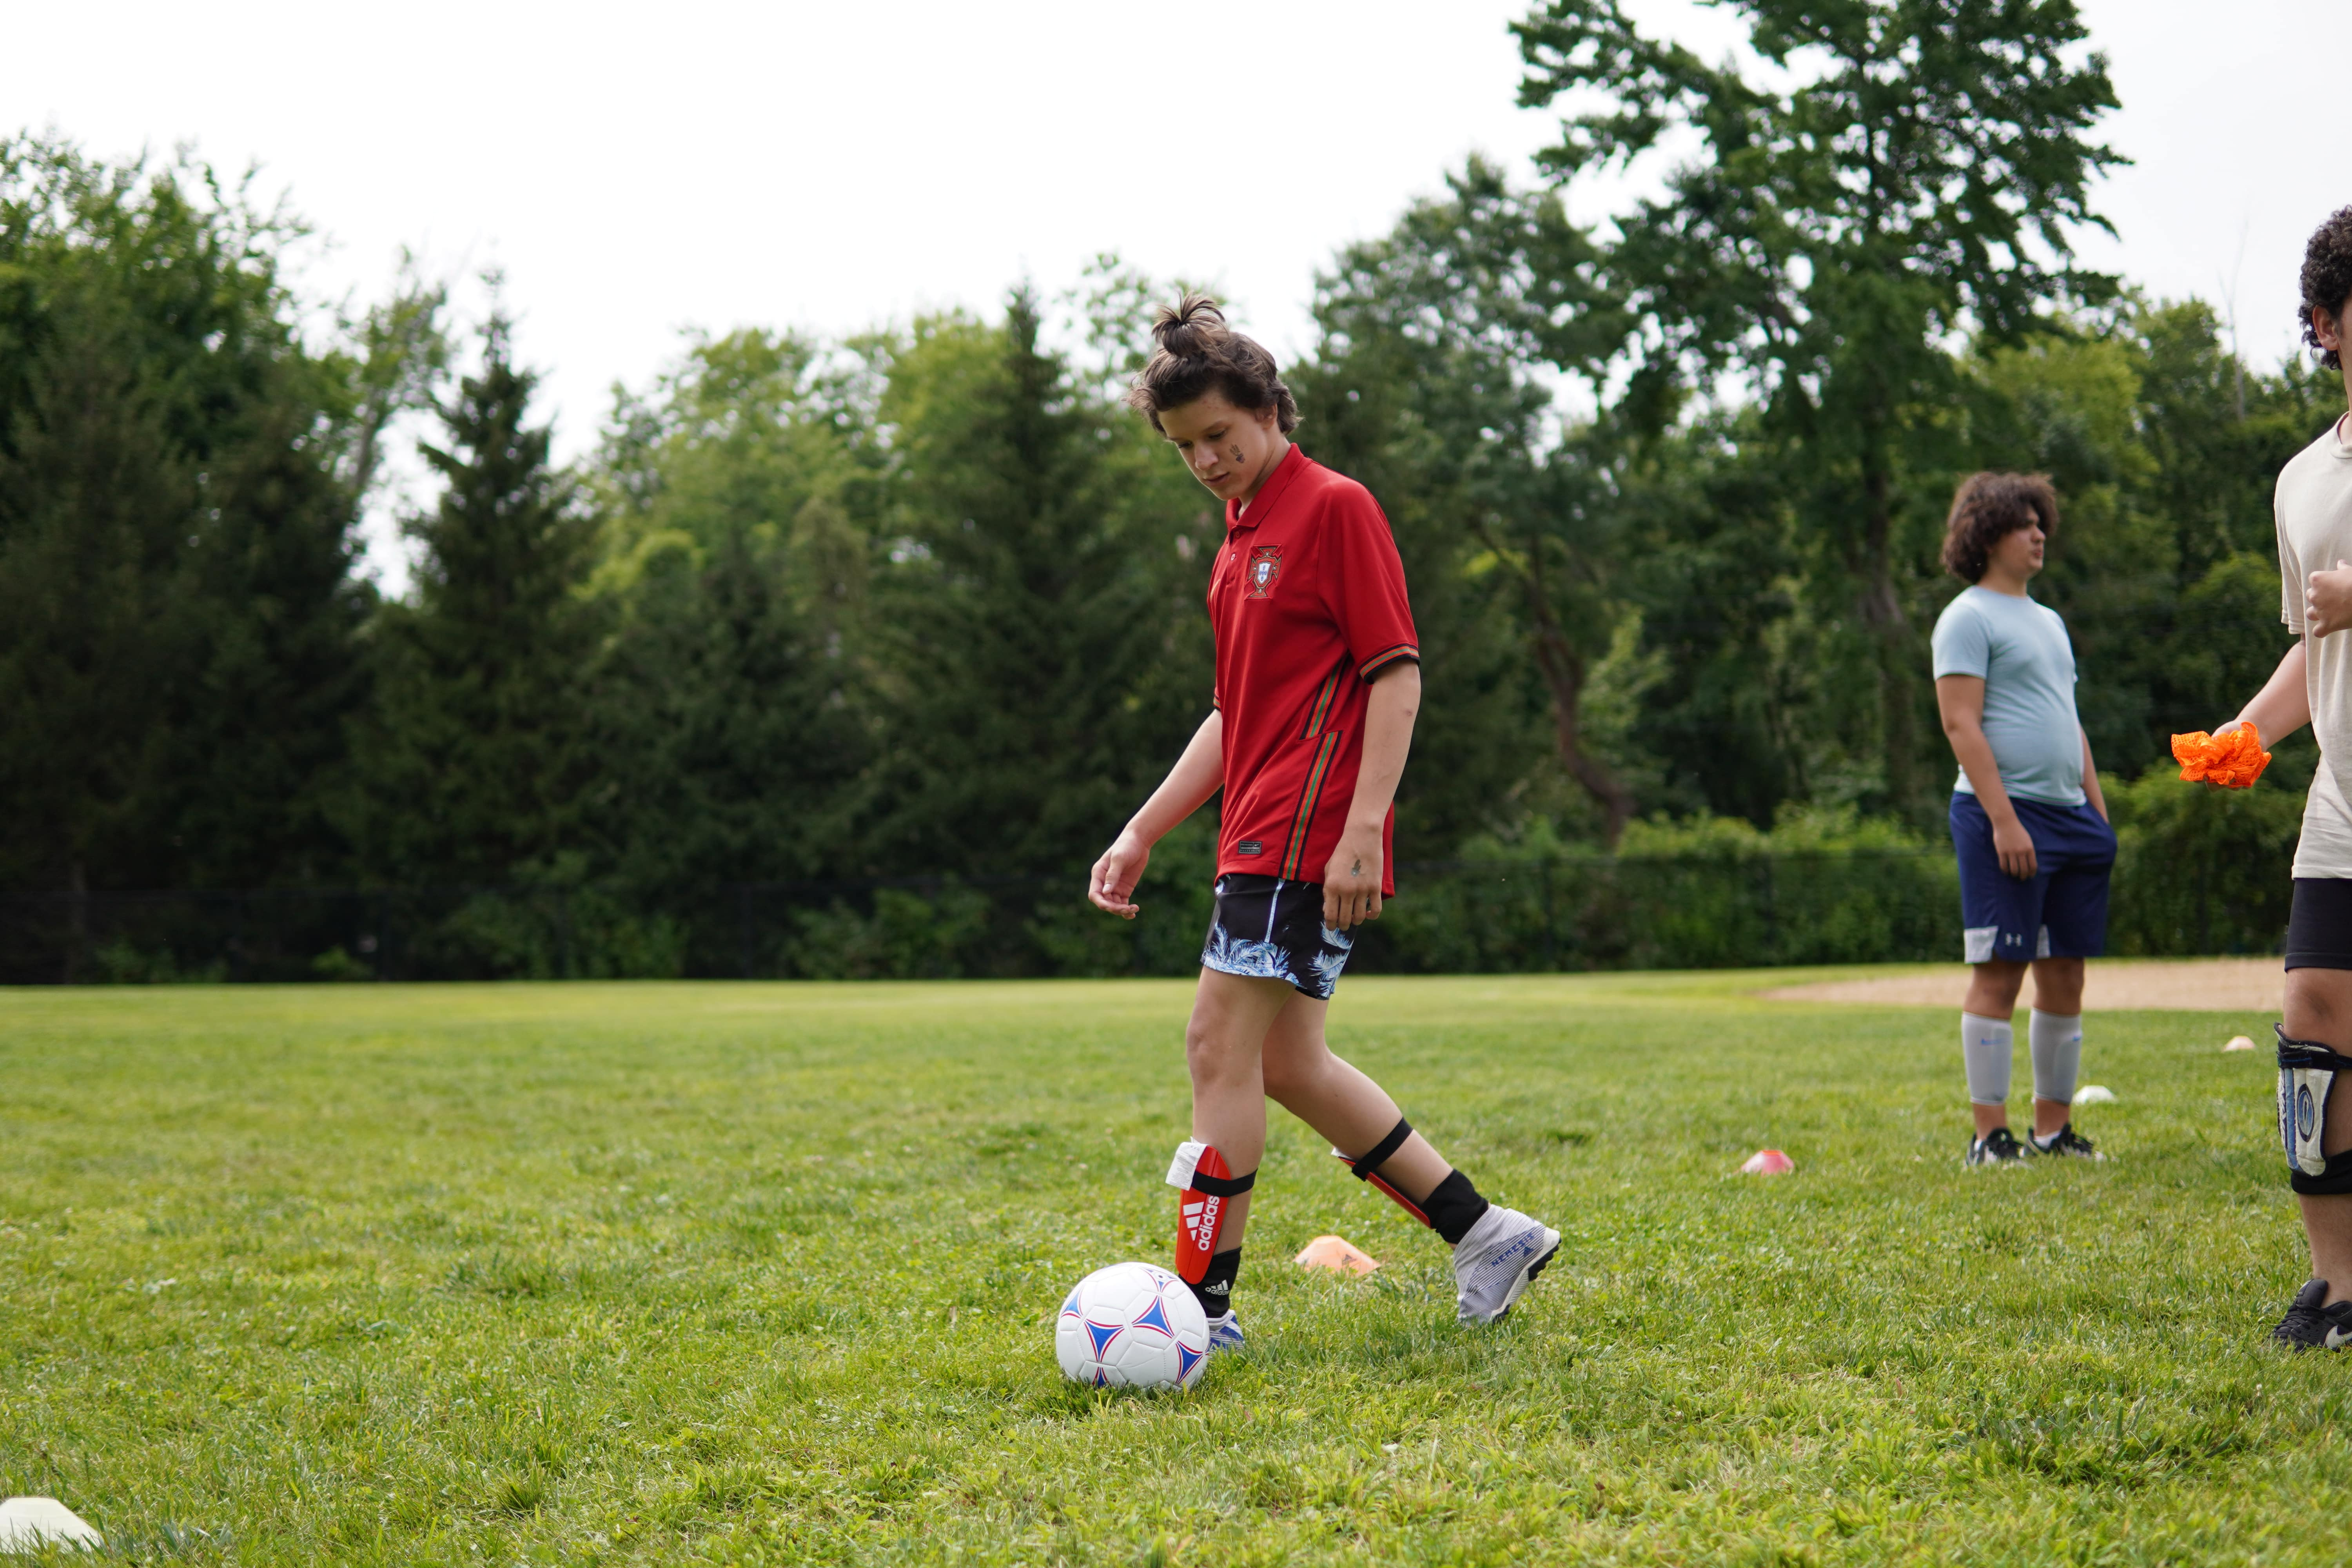 A student in a red soccer jersey stands on a field outdoors walking by the soccer ball preparing to kick it.